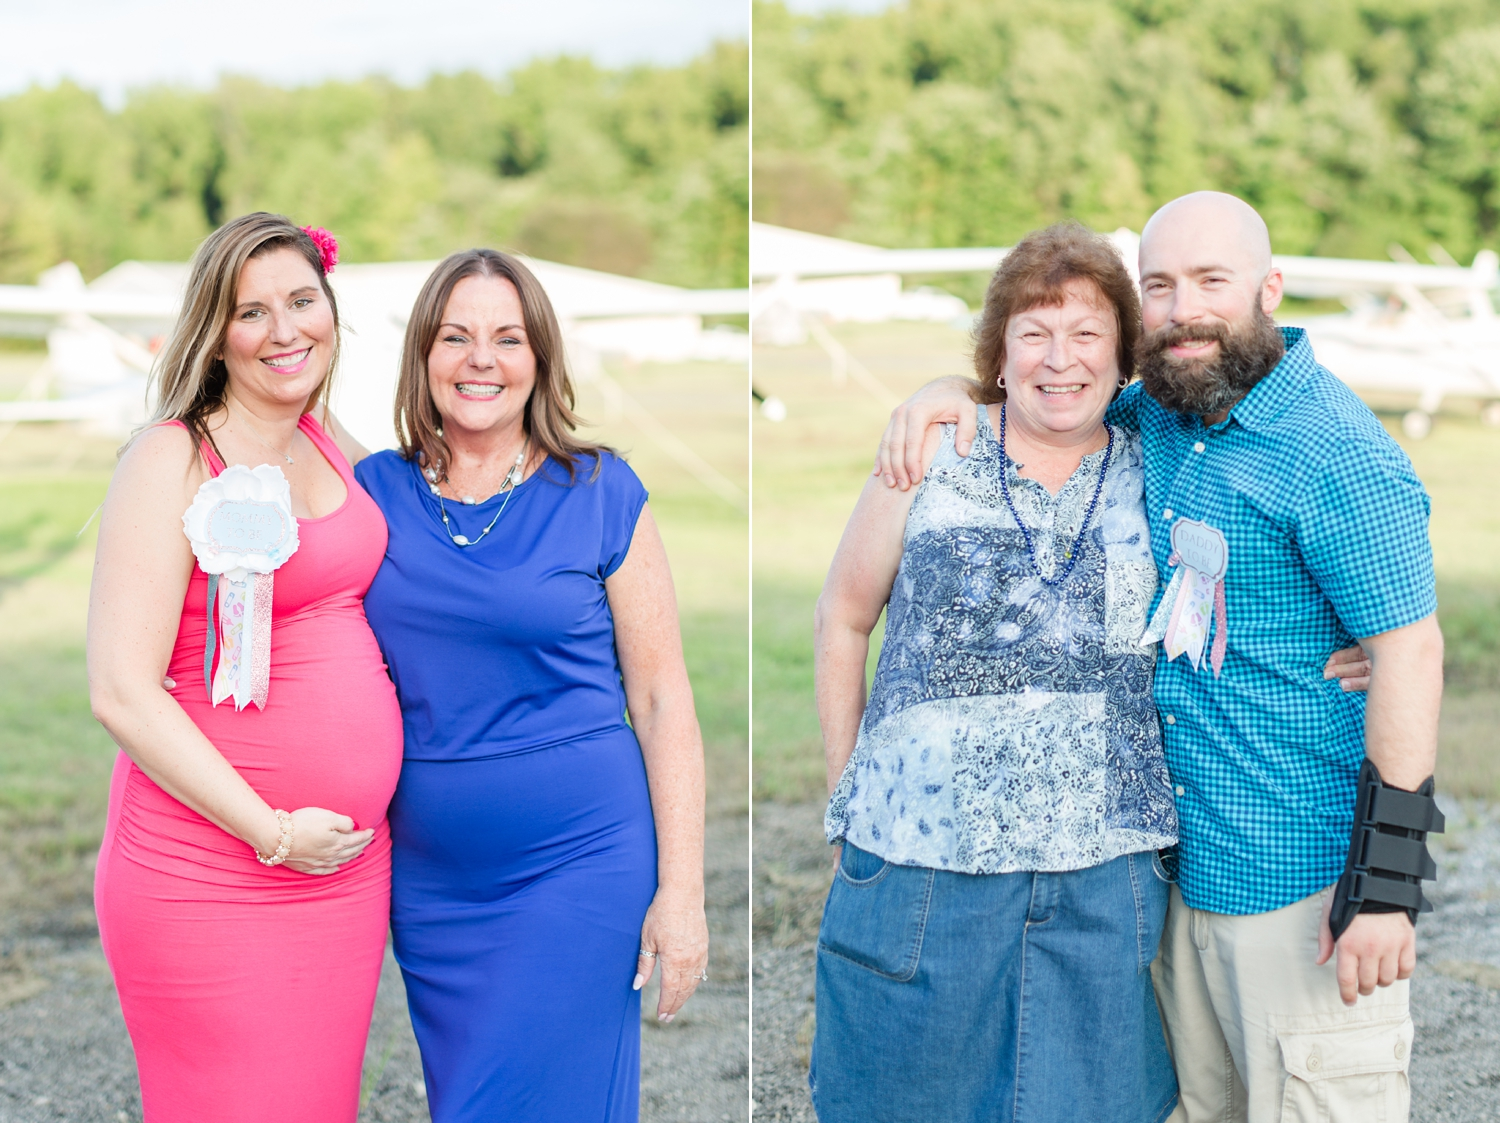 Calvert Gender Reveal-82_Baltimore-Maryland-Gender-Reveal-Maternity-photographer-anna-grace-photography-photo.jpg